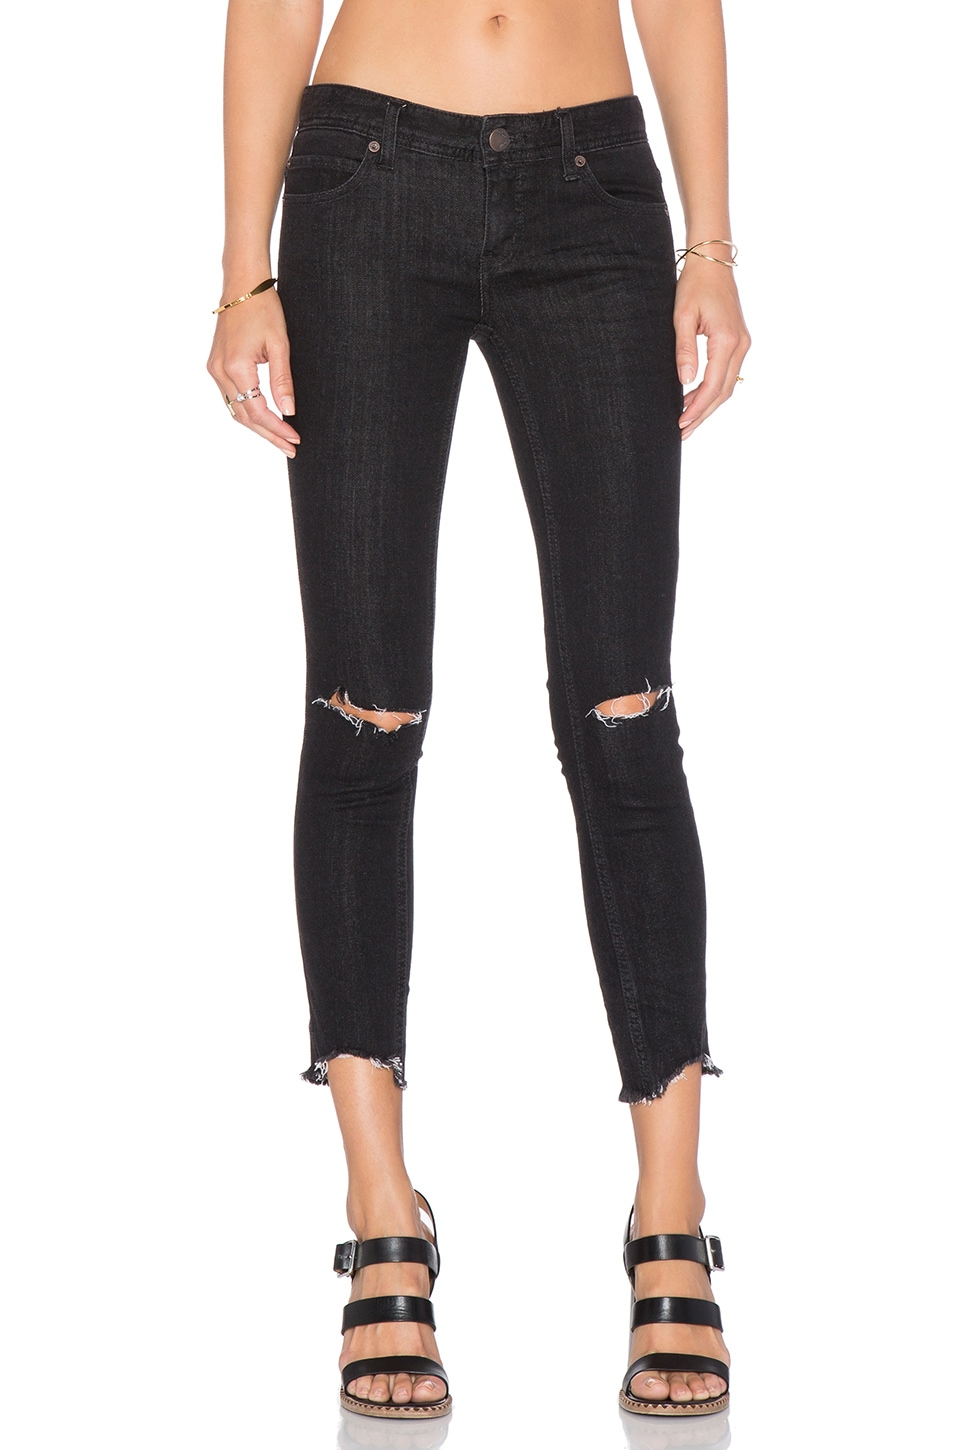 Free People Mid Rise Skinny Destroyed Ankle Jean in Black